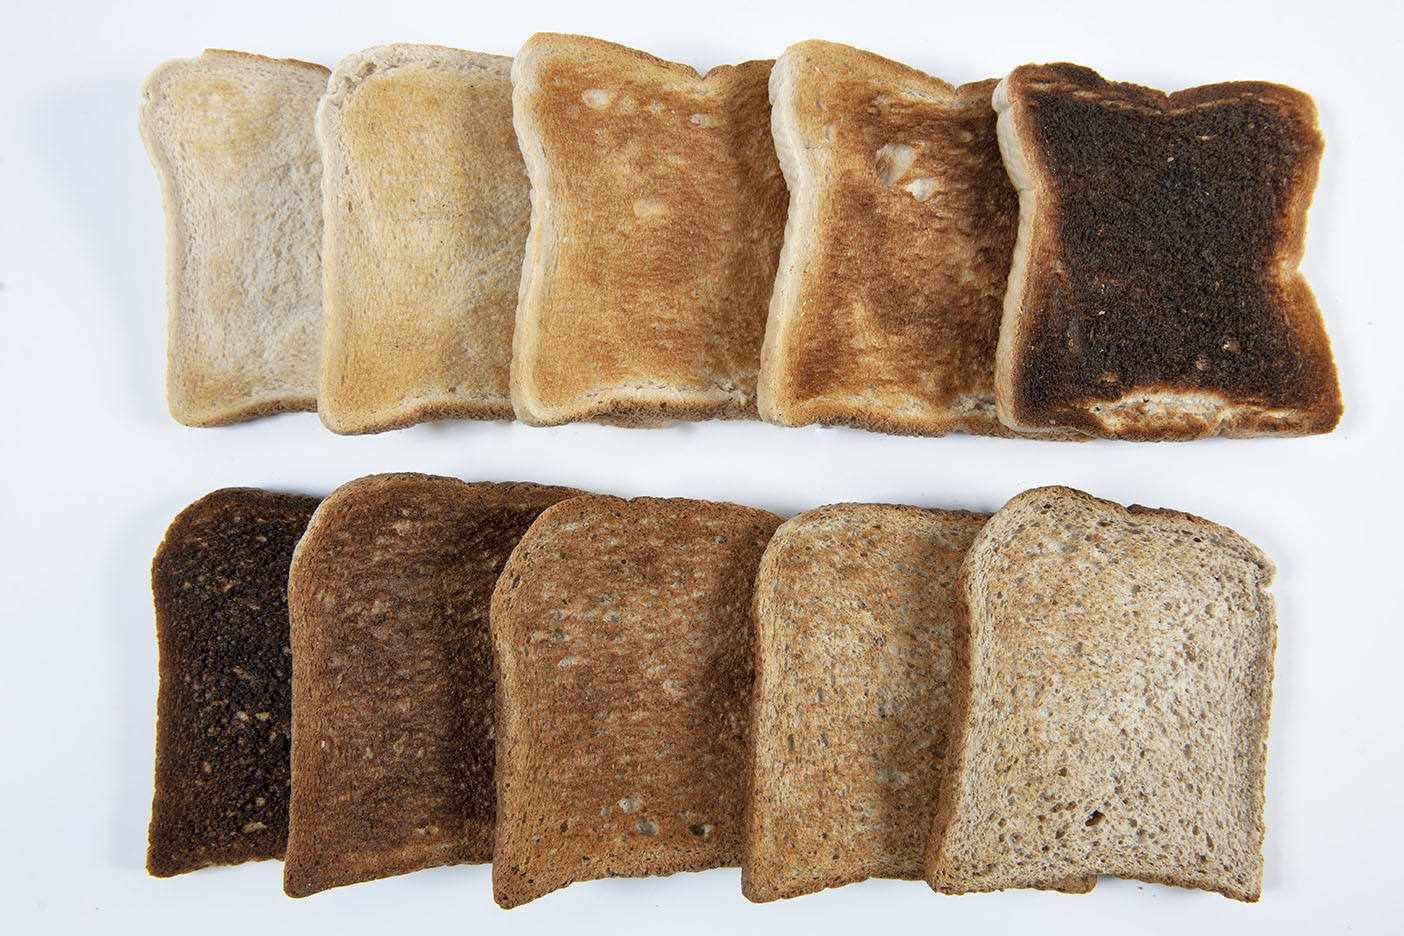 Acrylamide forms during bread baking and its presence is further increased when bread is toasted.